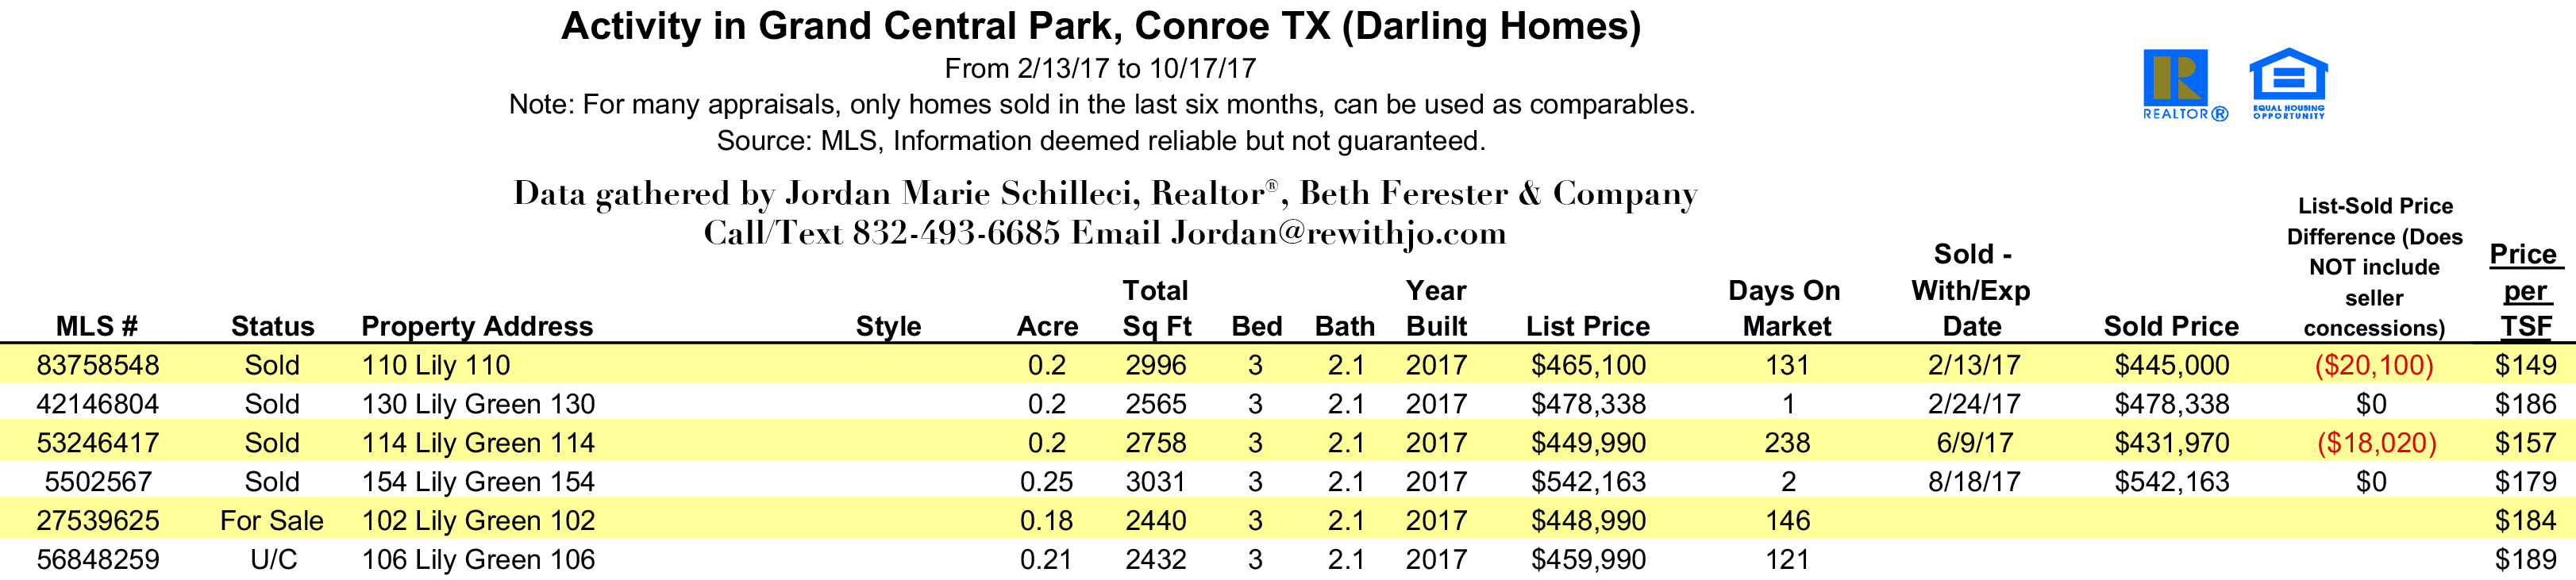 Darling Homes Grand Central Park Sold Data for 2017 through mid October